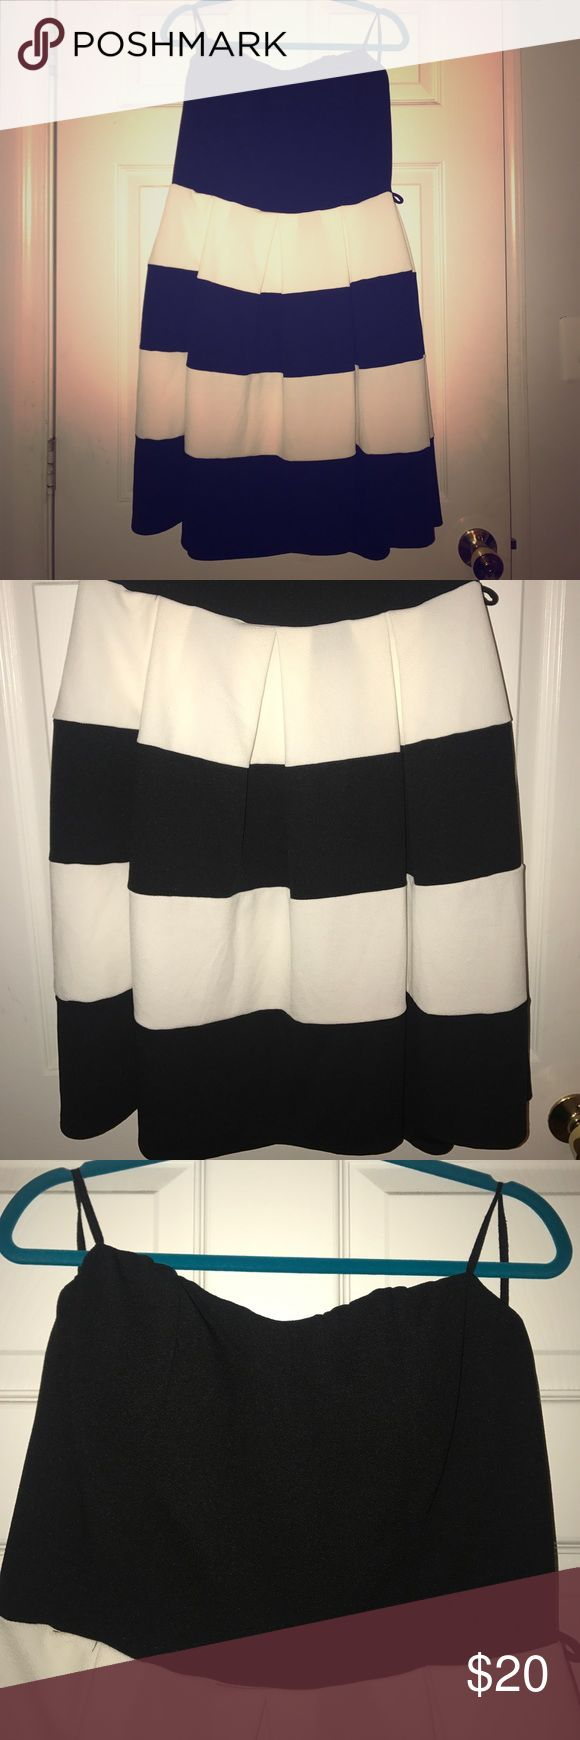 Strapless Flattering night out dress 👗 This dress is form fitting and flowy 😍 black and white.   Please note it came with a missing belt and it has never been worn (as shown in pictures) Fashion to Figure Dresses